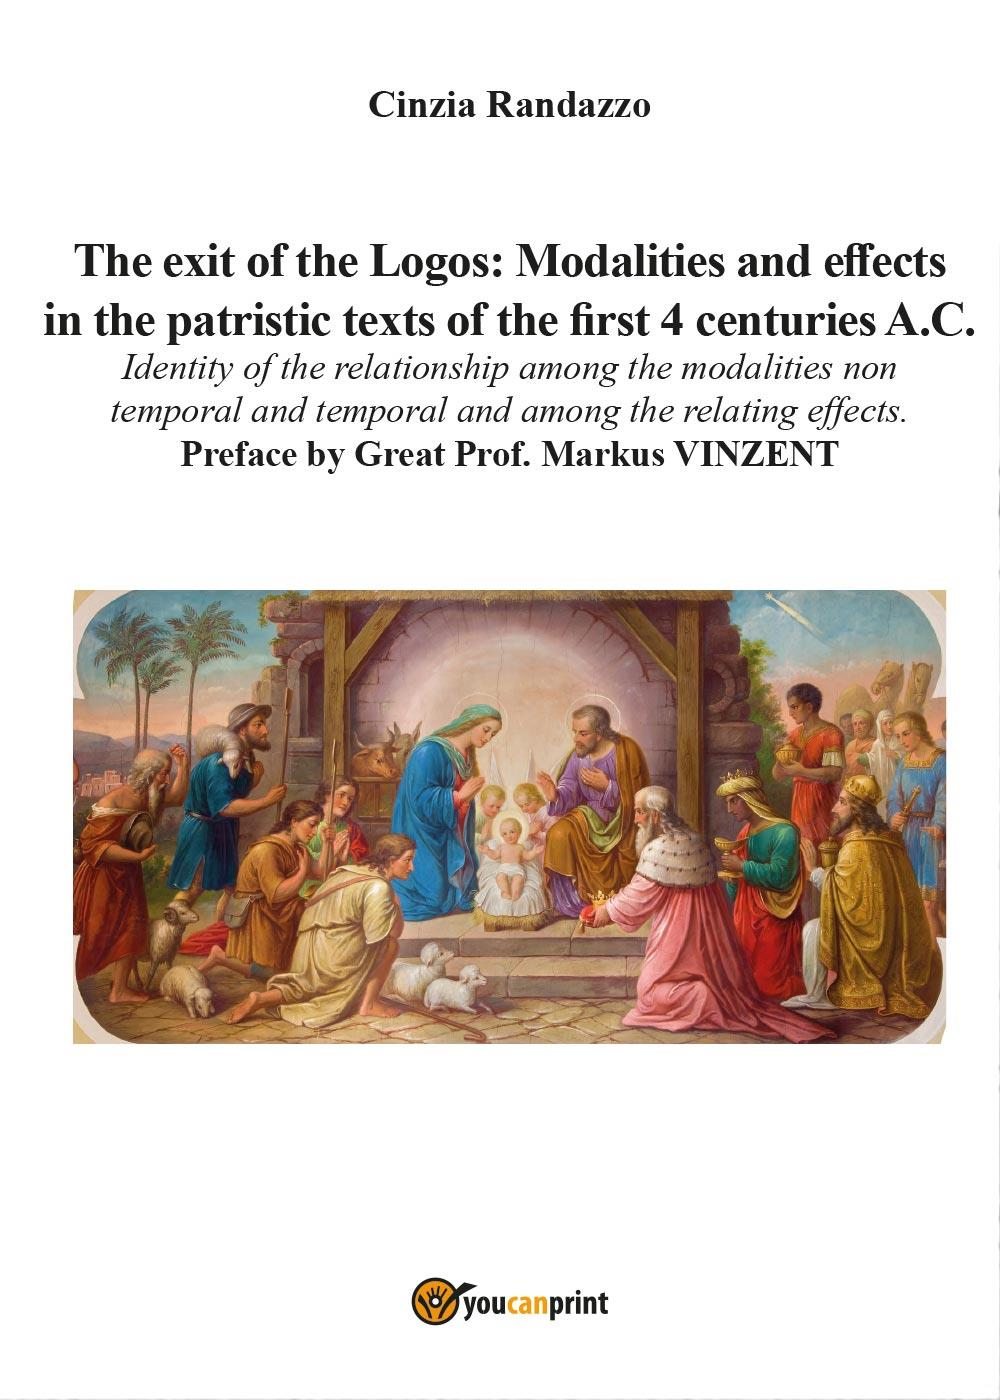 The exit of the Logos: Modalities and effects in the patristic text of the first 4 centuries A.C.